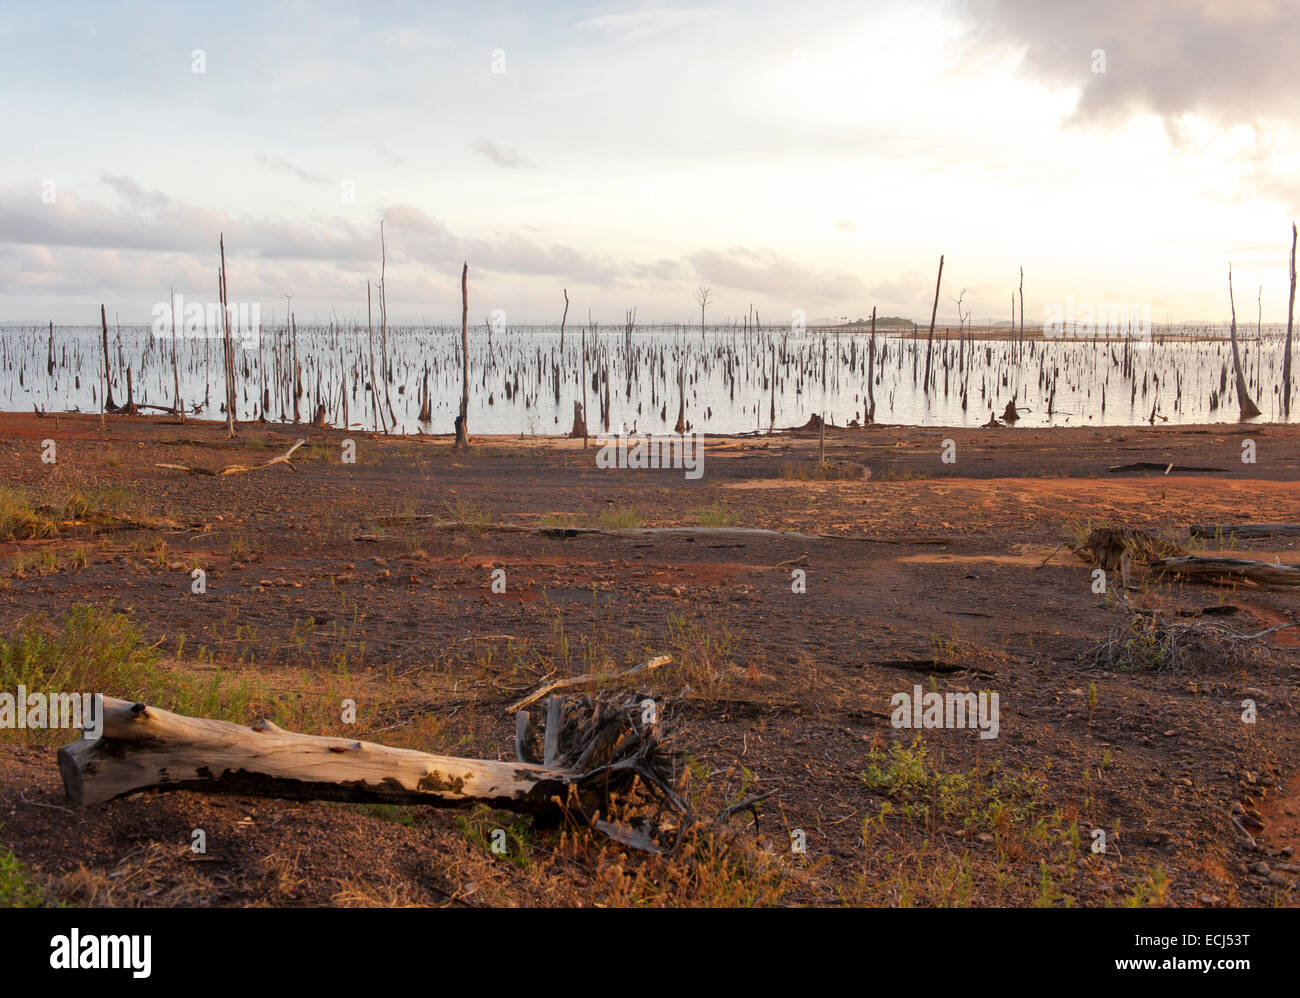 Sunrise at Matu Island: trunks and roots as last remains of the submerged rainforest in Lake Brokopondo, Suriname - Stock Image